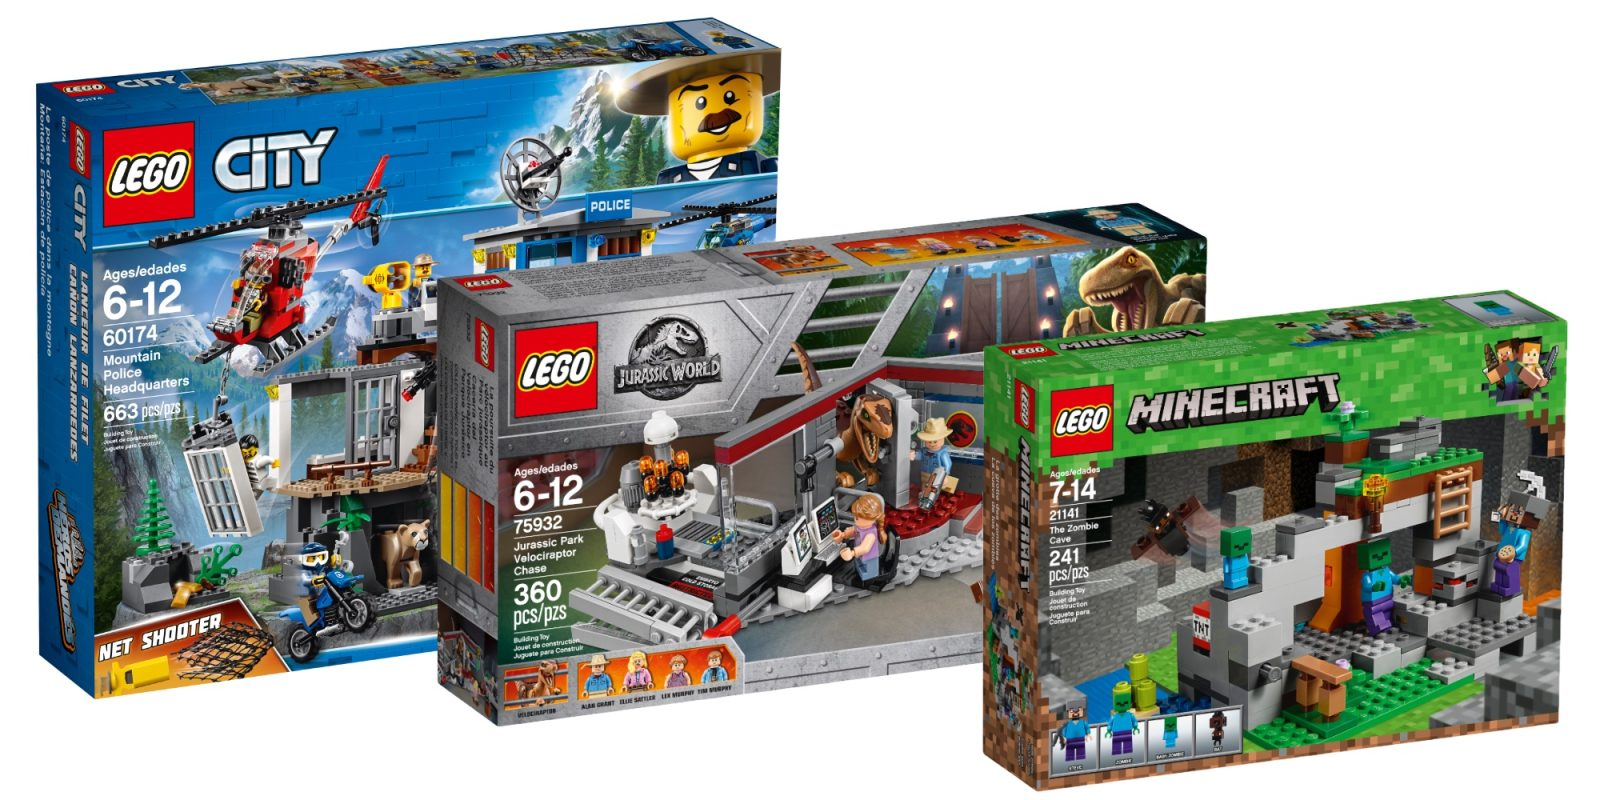 Assemble LEGO Jurassic Park, Creator, City, Minecraft kits and more from $7.50